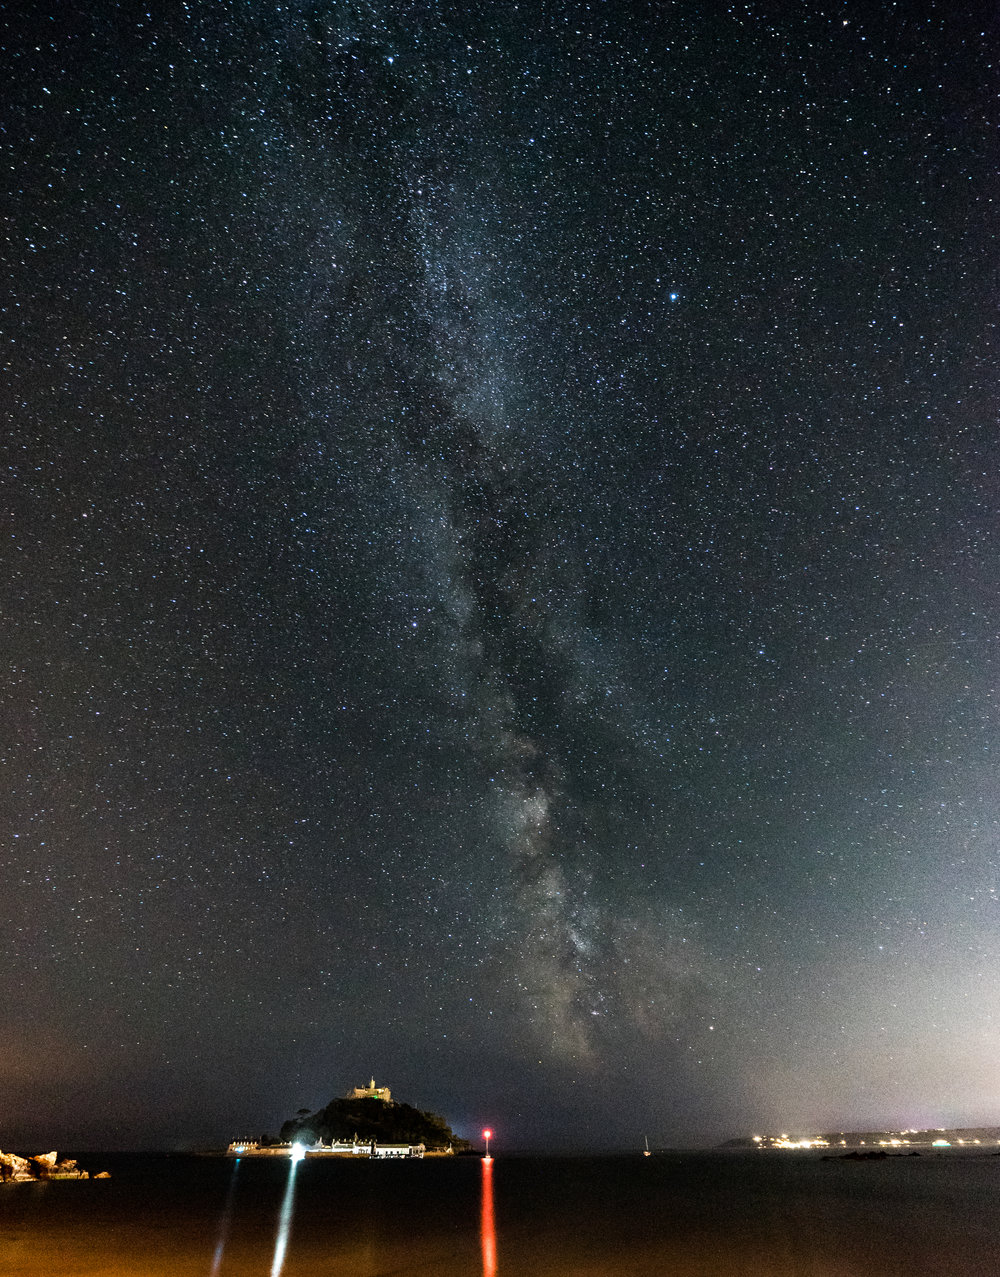 st-michaels-mount-milky-way-27th-august-2017_36027133674_o.jpg